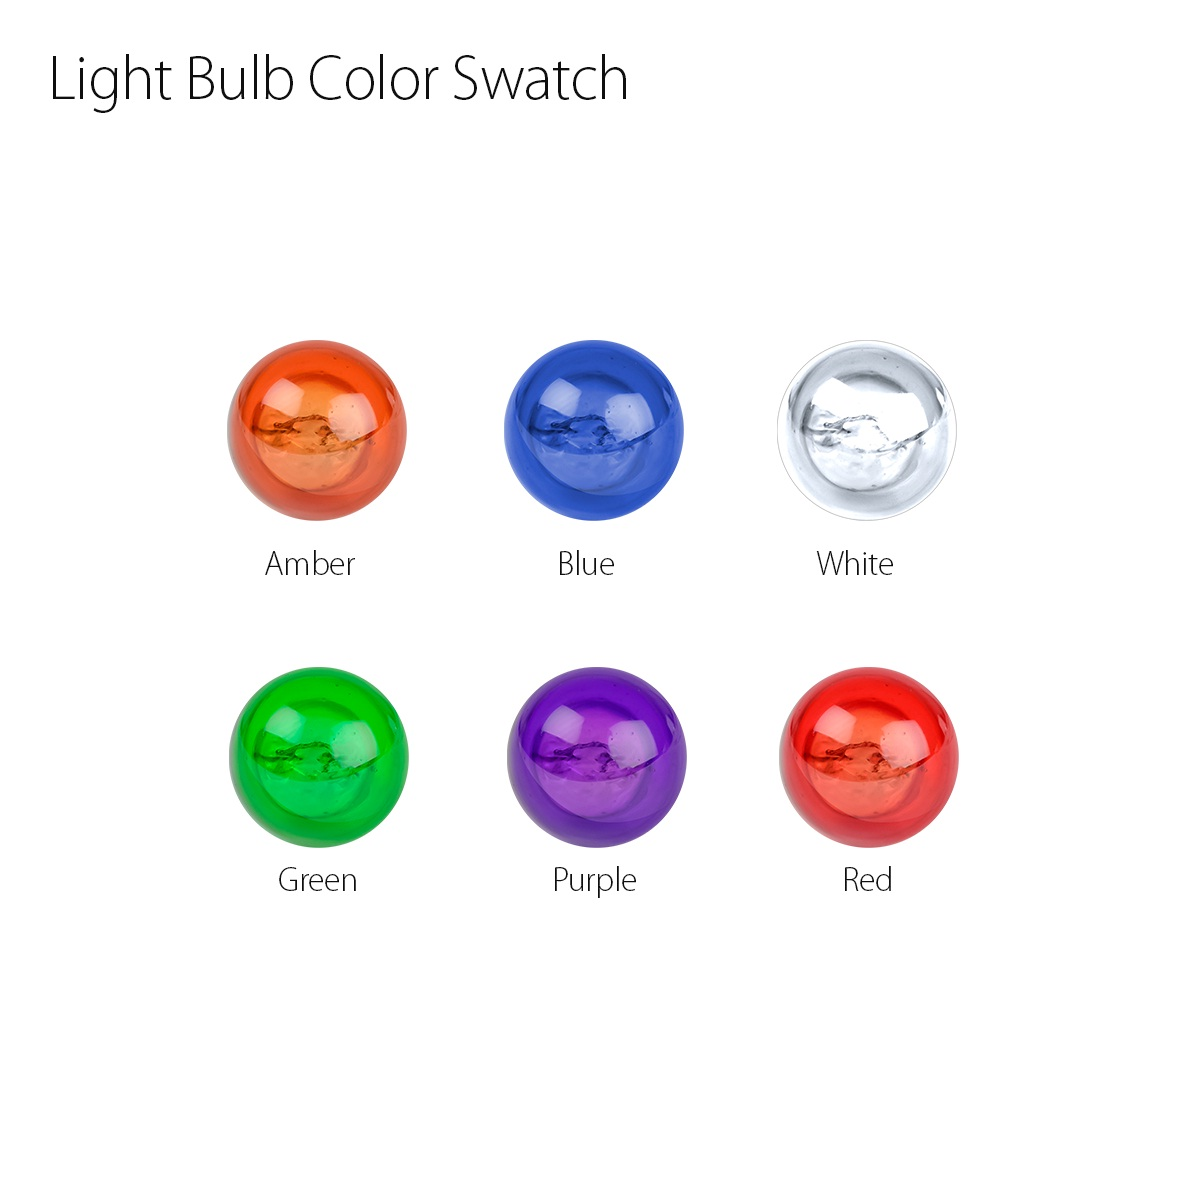 #1141 Miniature Replacement Color Light Bulb Swatch